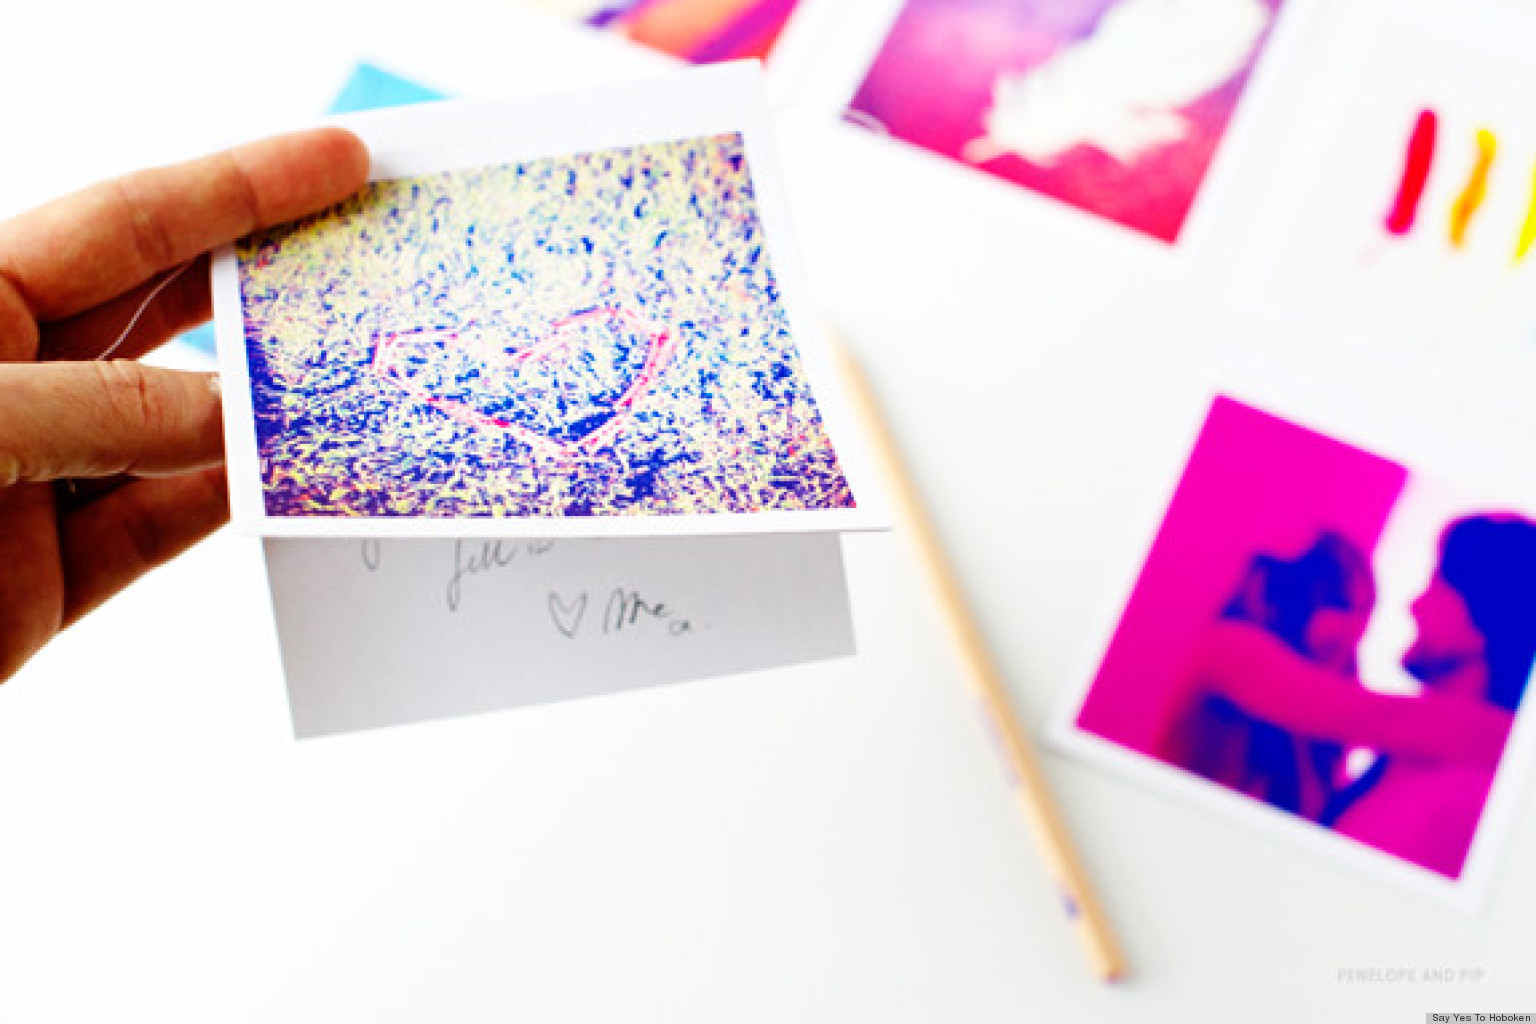 Homemade Gift Ideas An Easy Way To Turn Instagram Photos